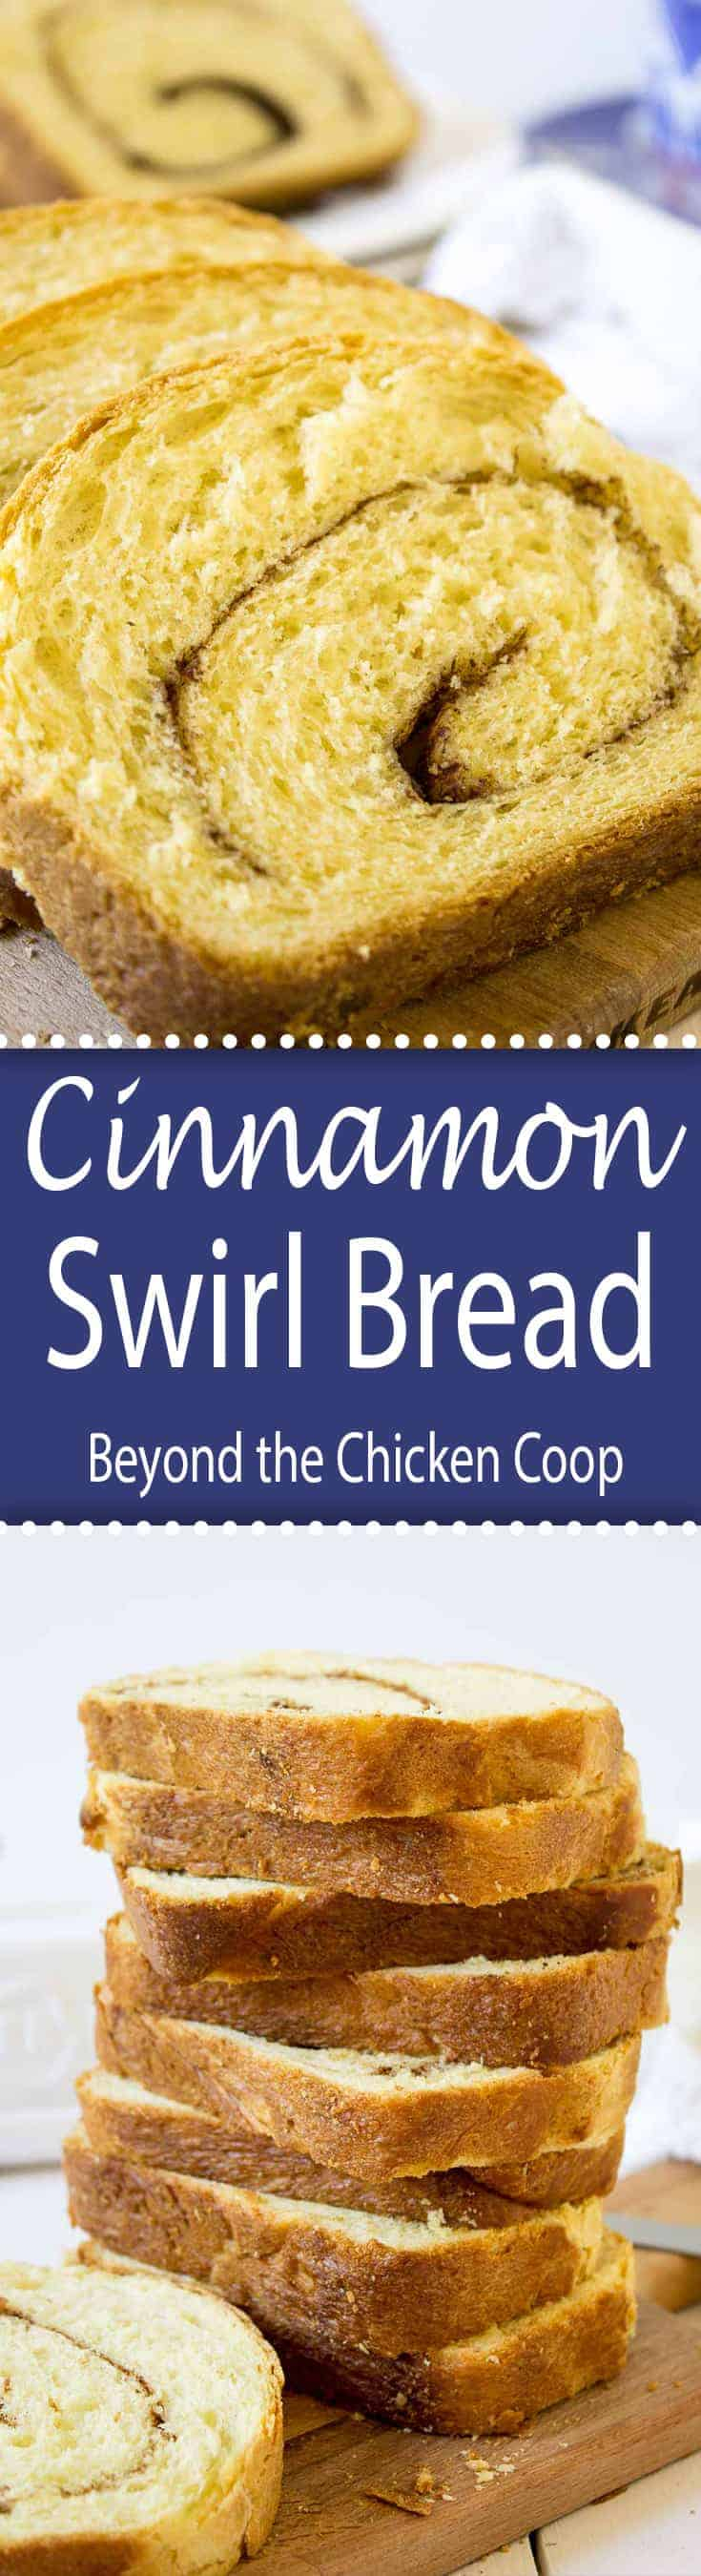 Cinnamon Swirl Bread  is perfect for breakfast toasted with butter or eaten plain. Either way is delicious!